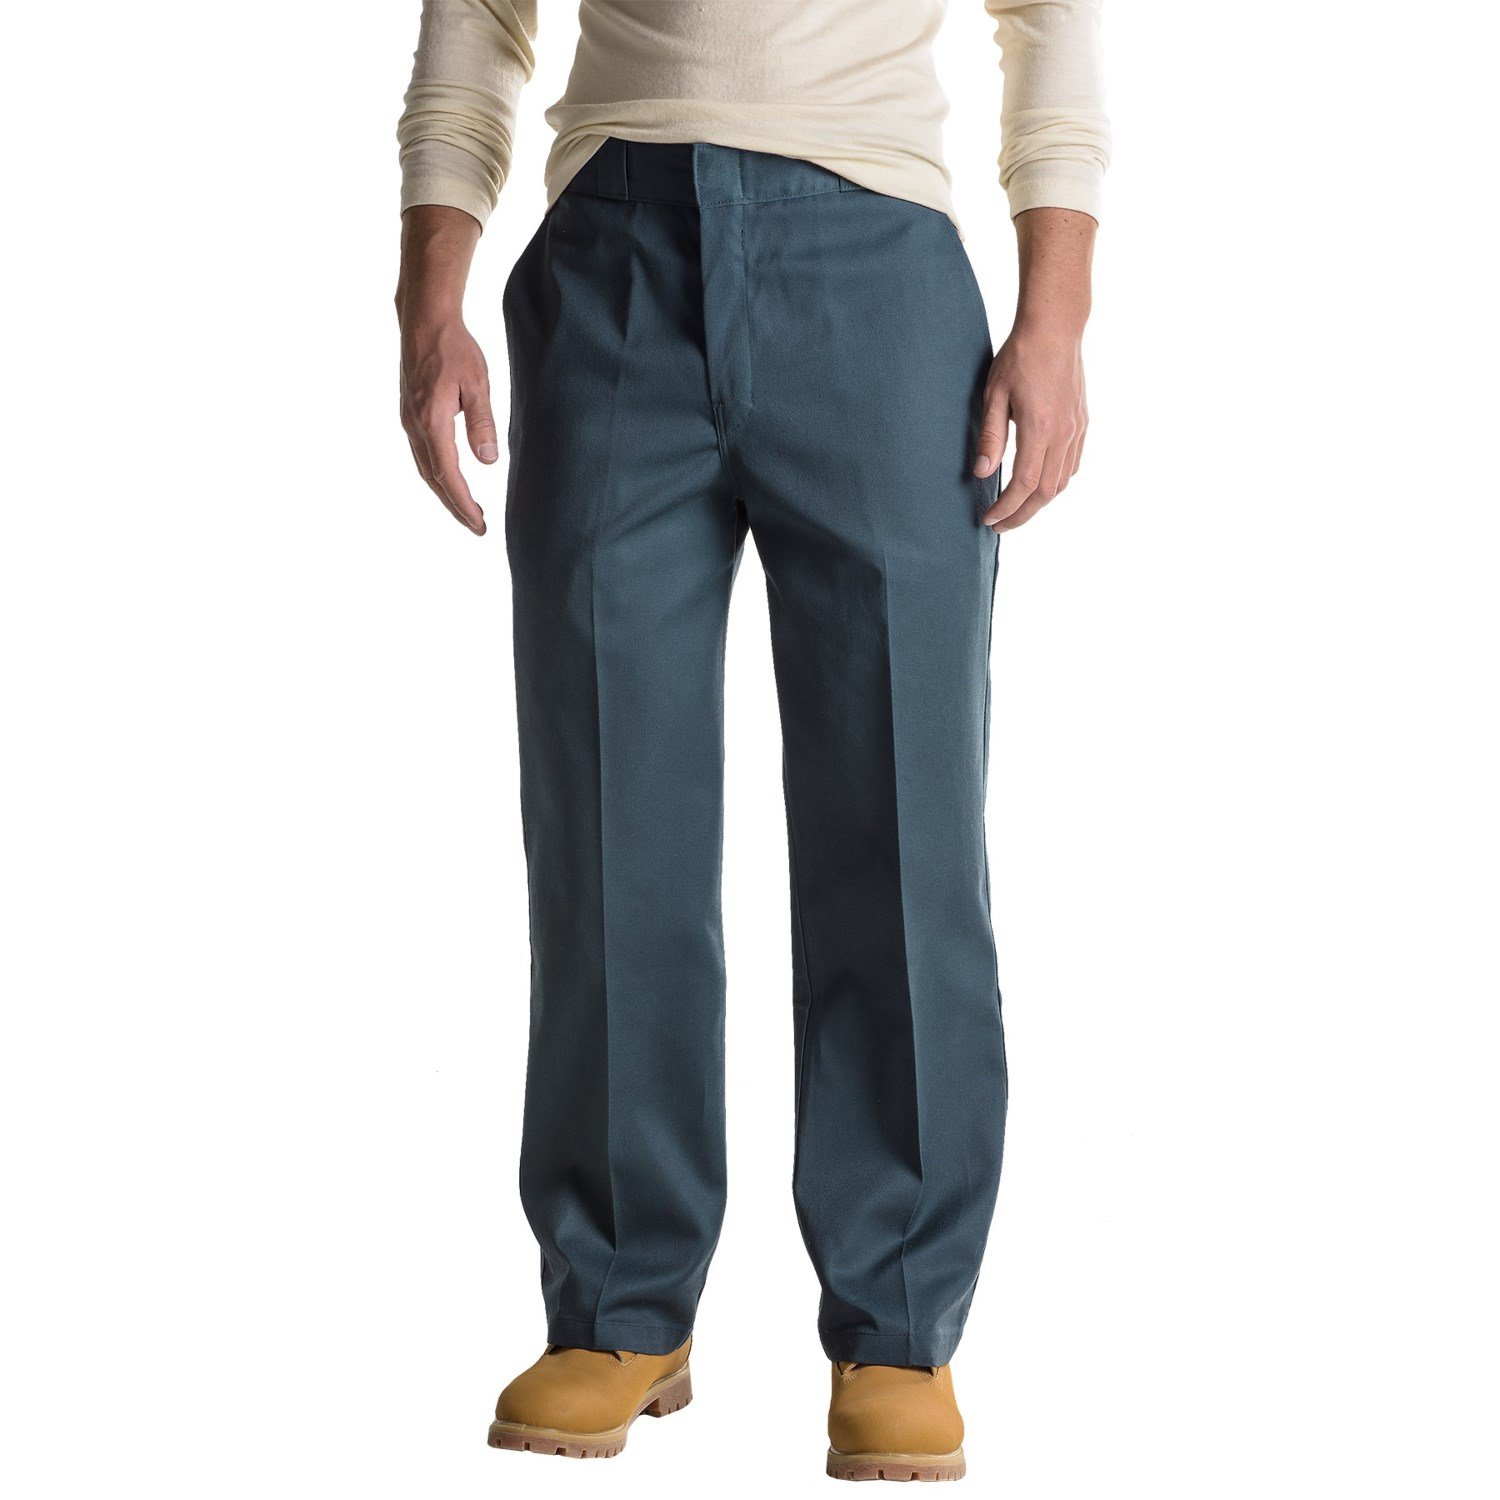 Wolverine Twill Work Pants (For Men) 183JX - Save 80%